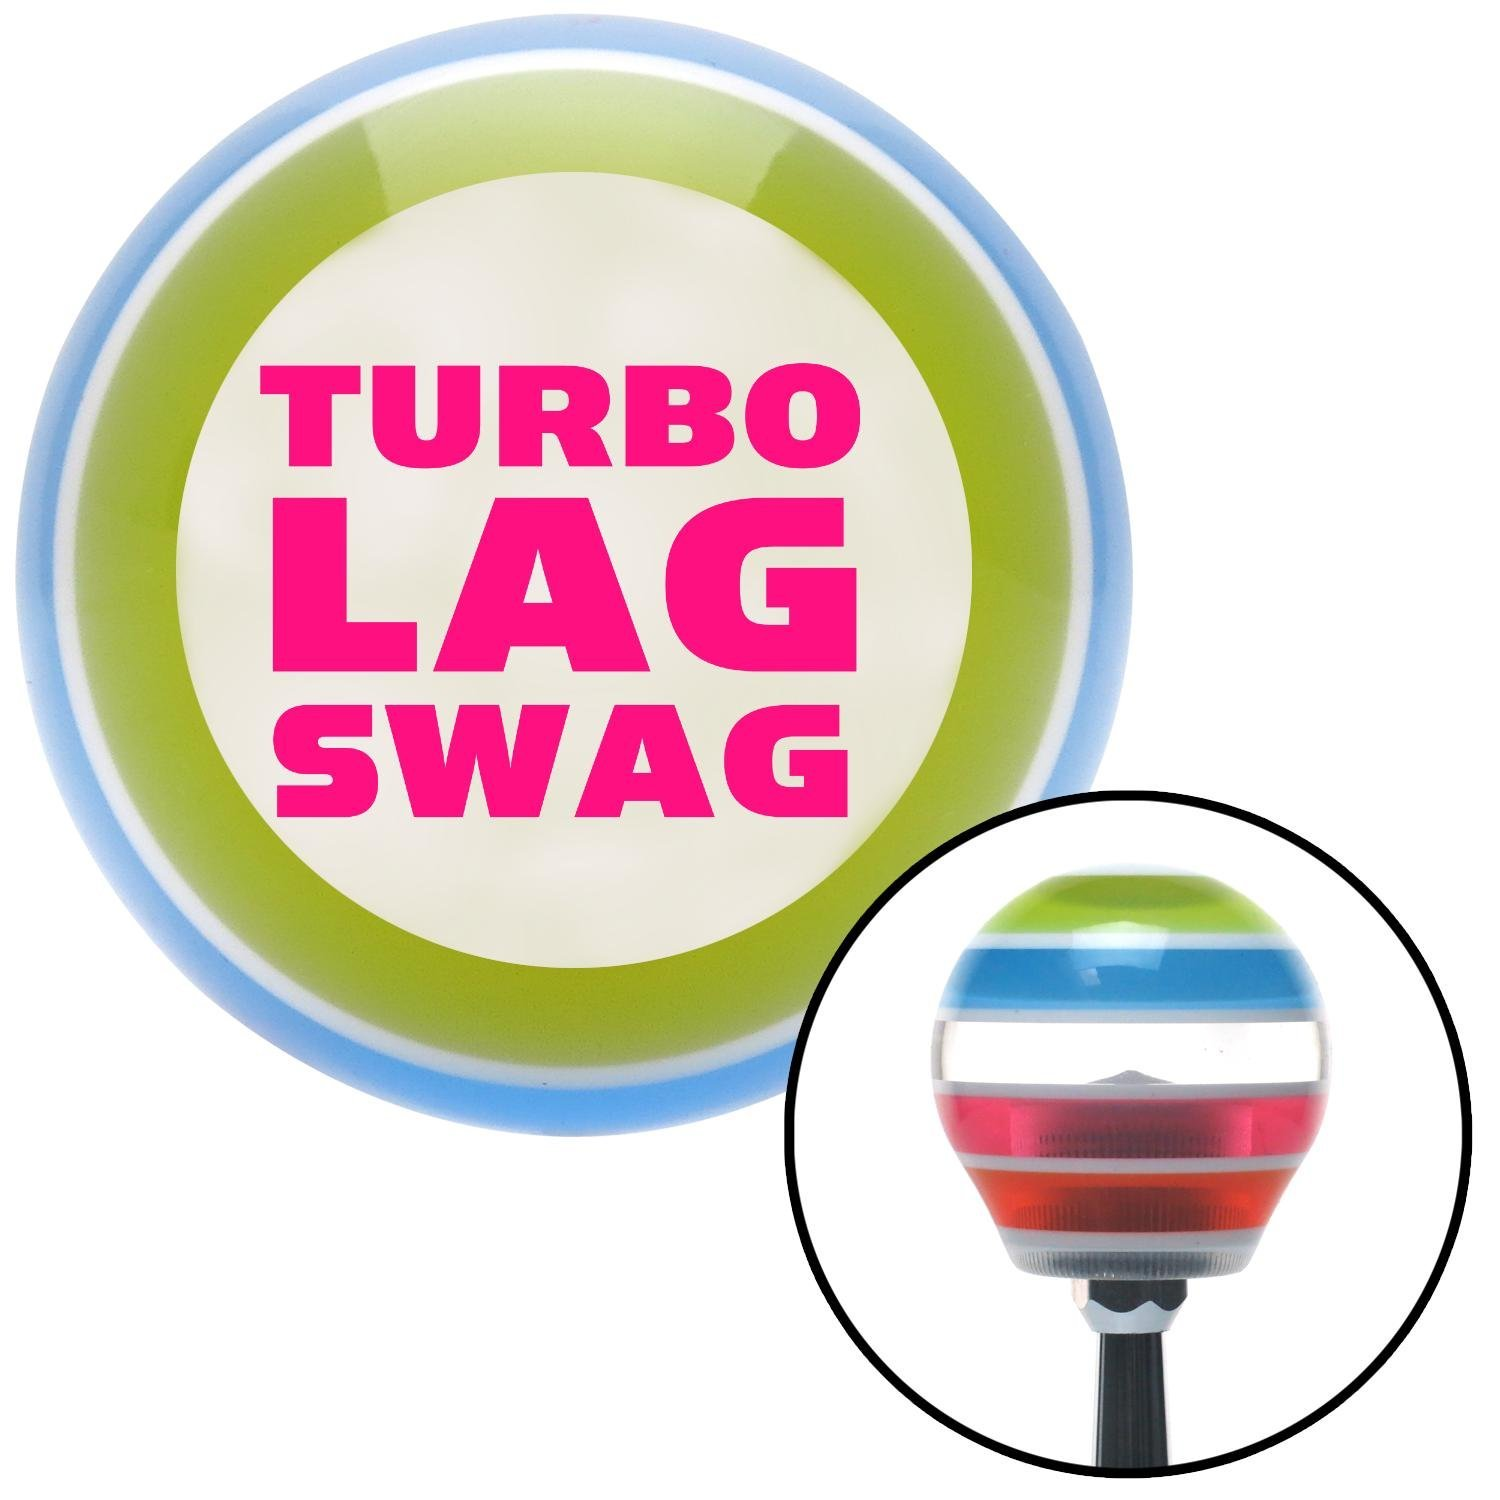 American Shifter 137952 Stripe Shift Knob with M16 x 1.5 Insert Pink Turbo Lag Swag